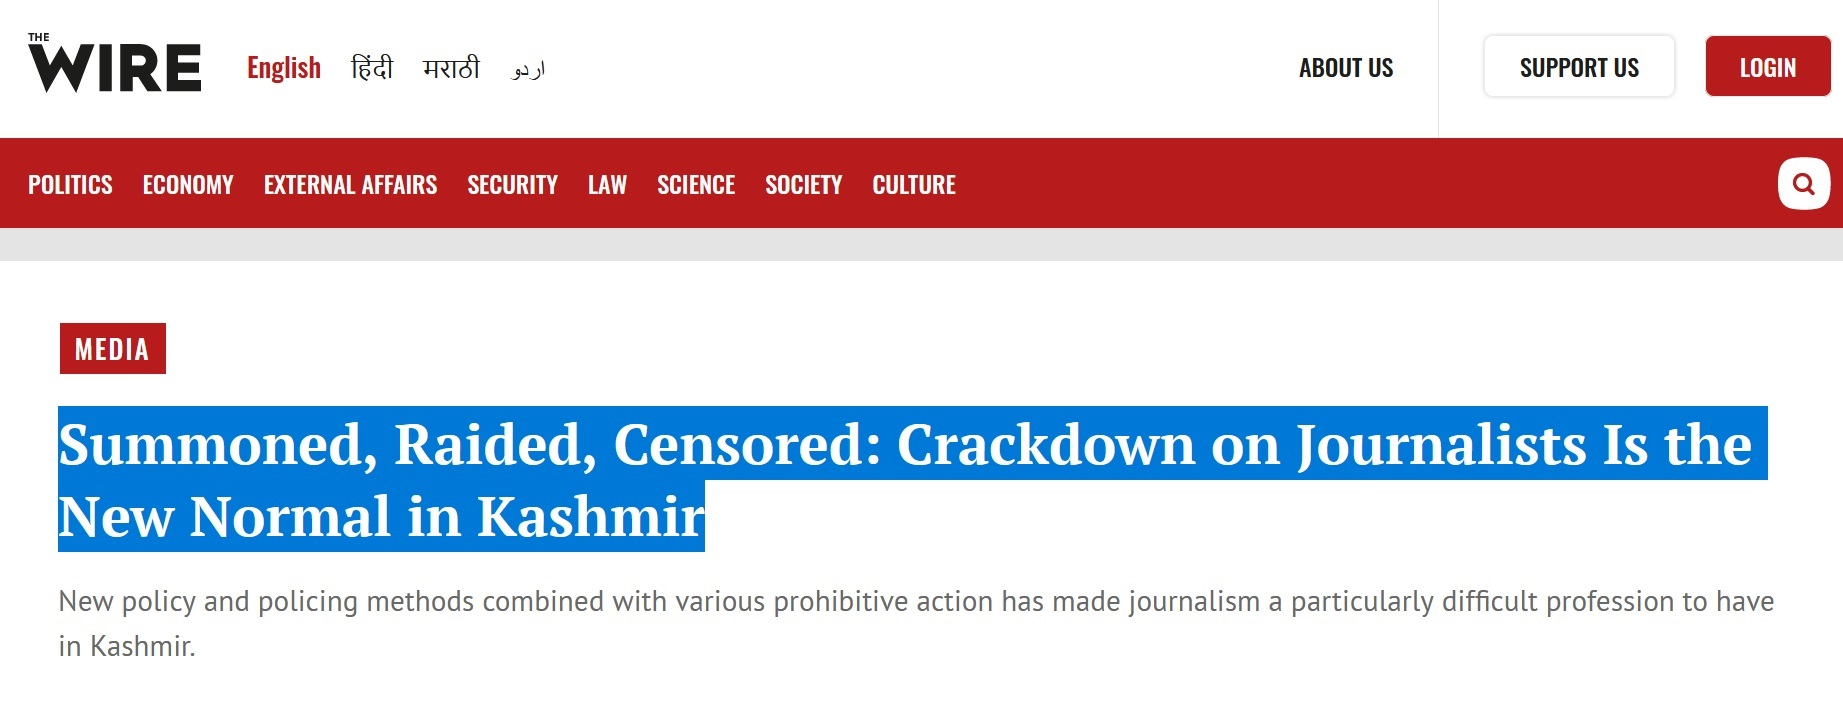 Journalists in Indian Occupied Kashmir are Summoned, Raided, Censored and subjugated, says report published in India media